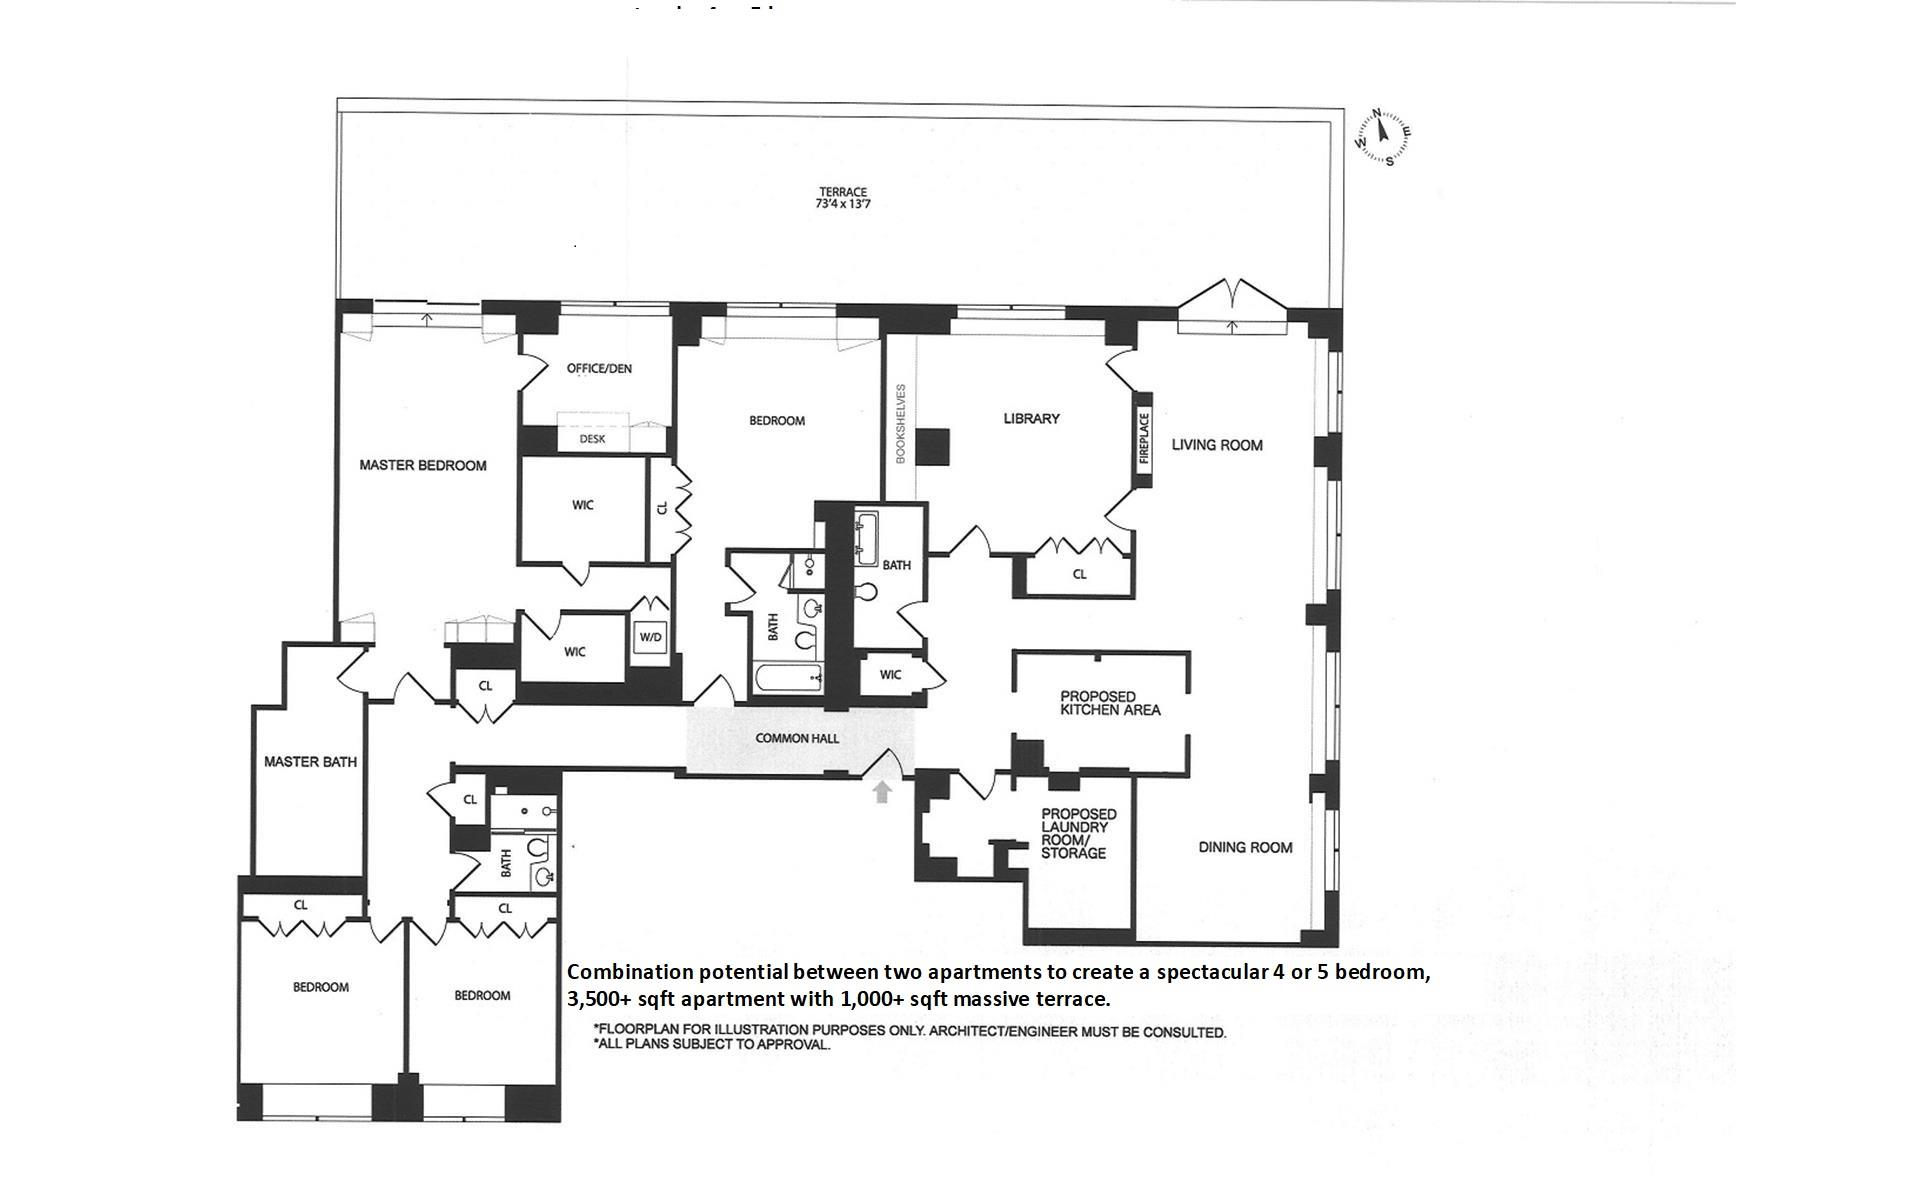 Floor plan of 120 East 87th St, R10LA - Carnegie Hill, New York